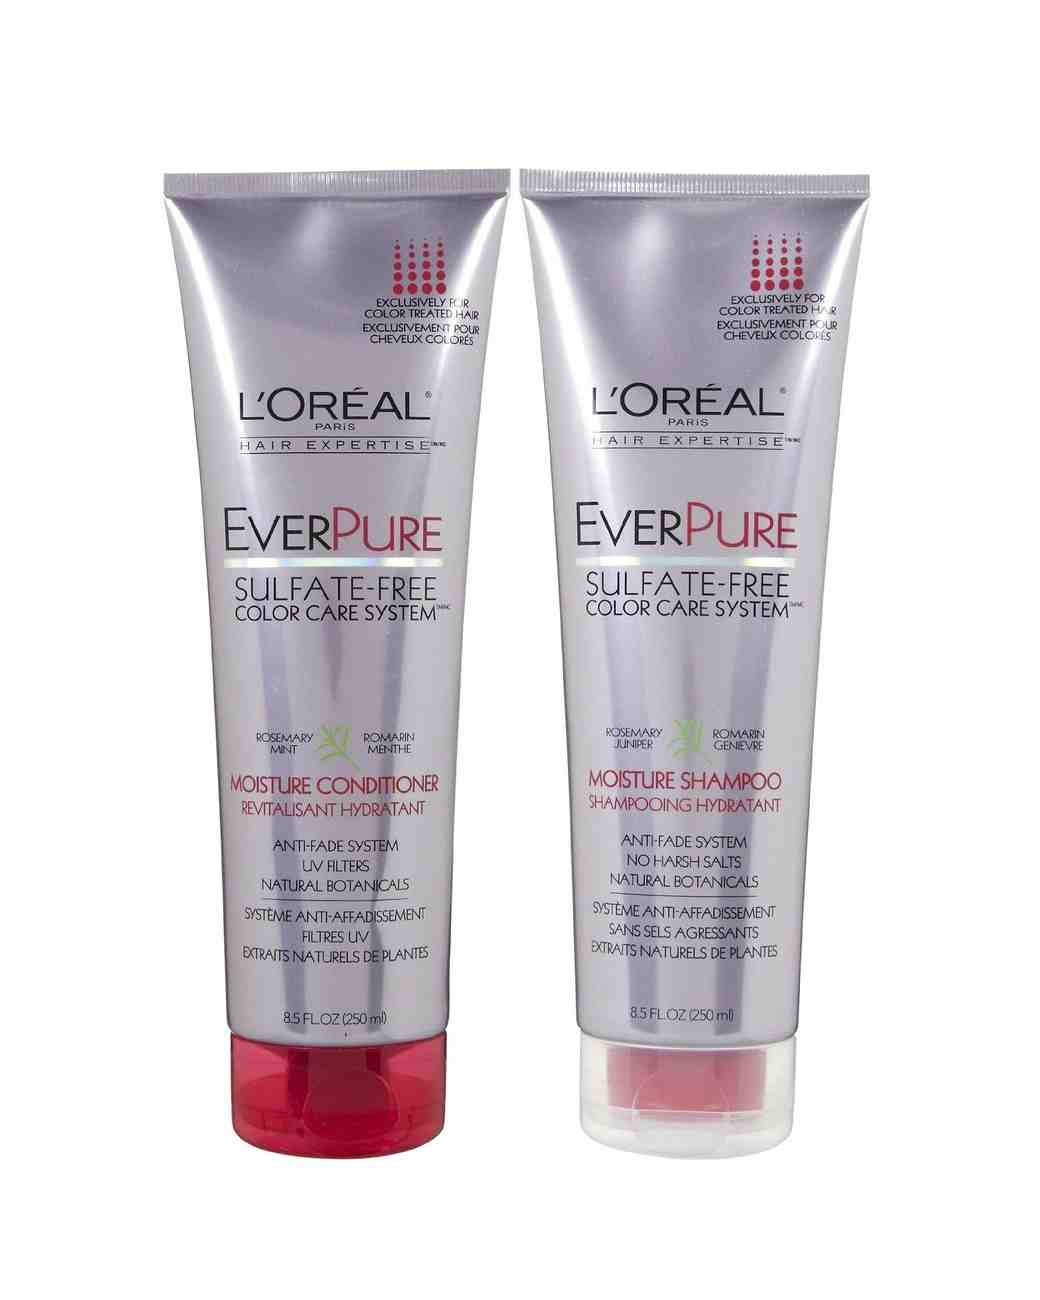 big-day-beauty-awards-loreal-everpure-shampoo-and-conditioner-0216.jpg